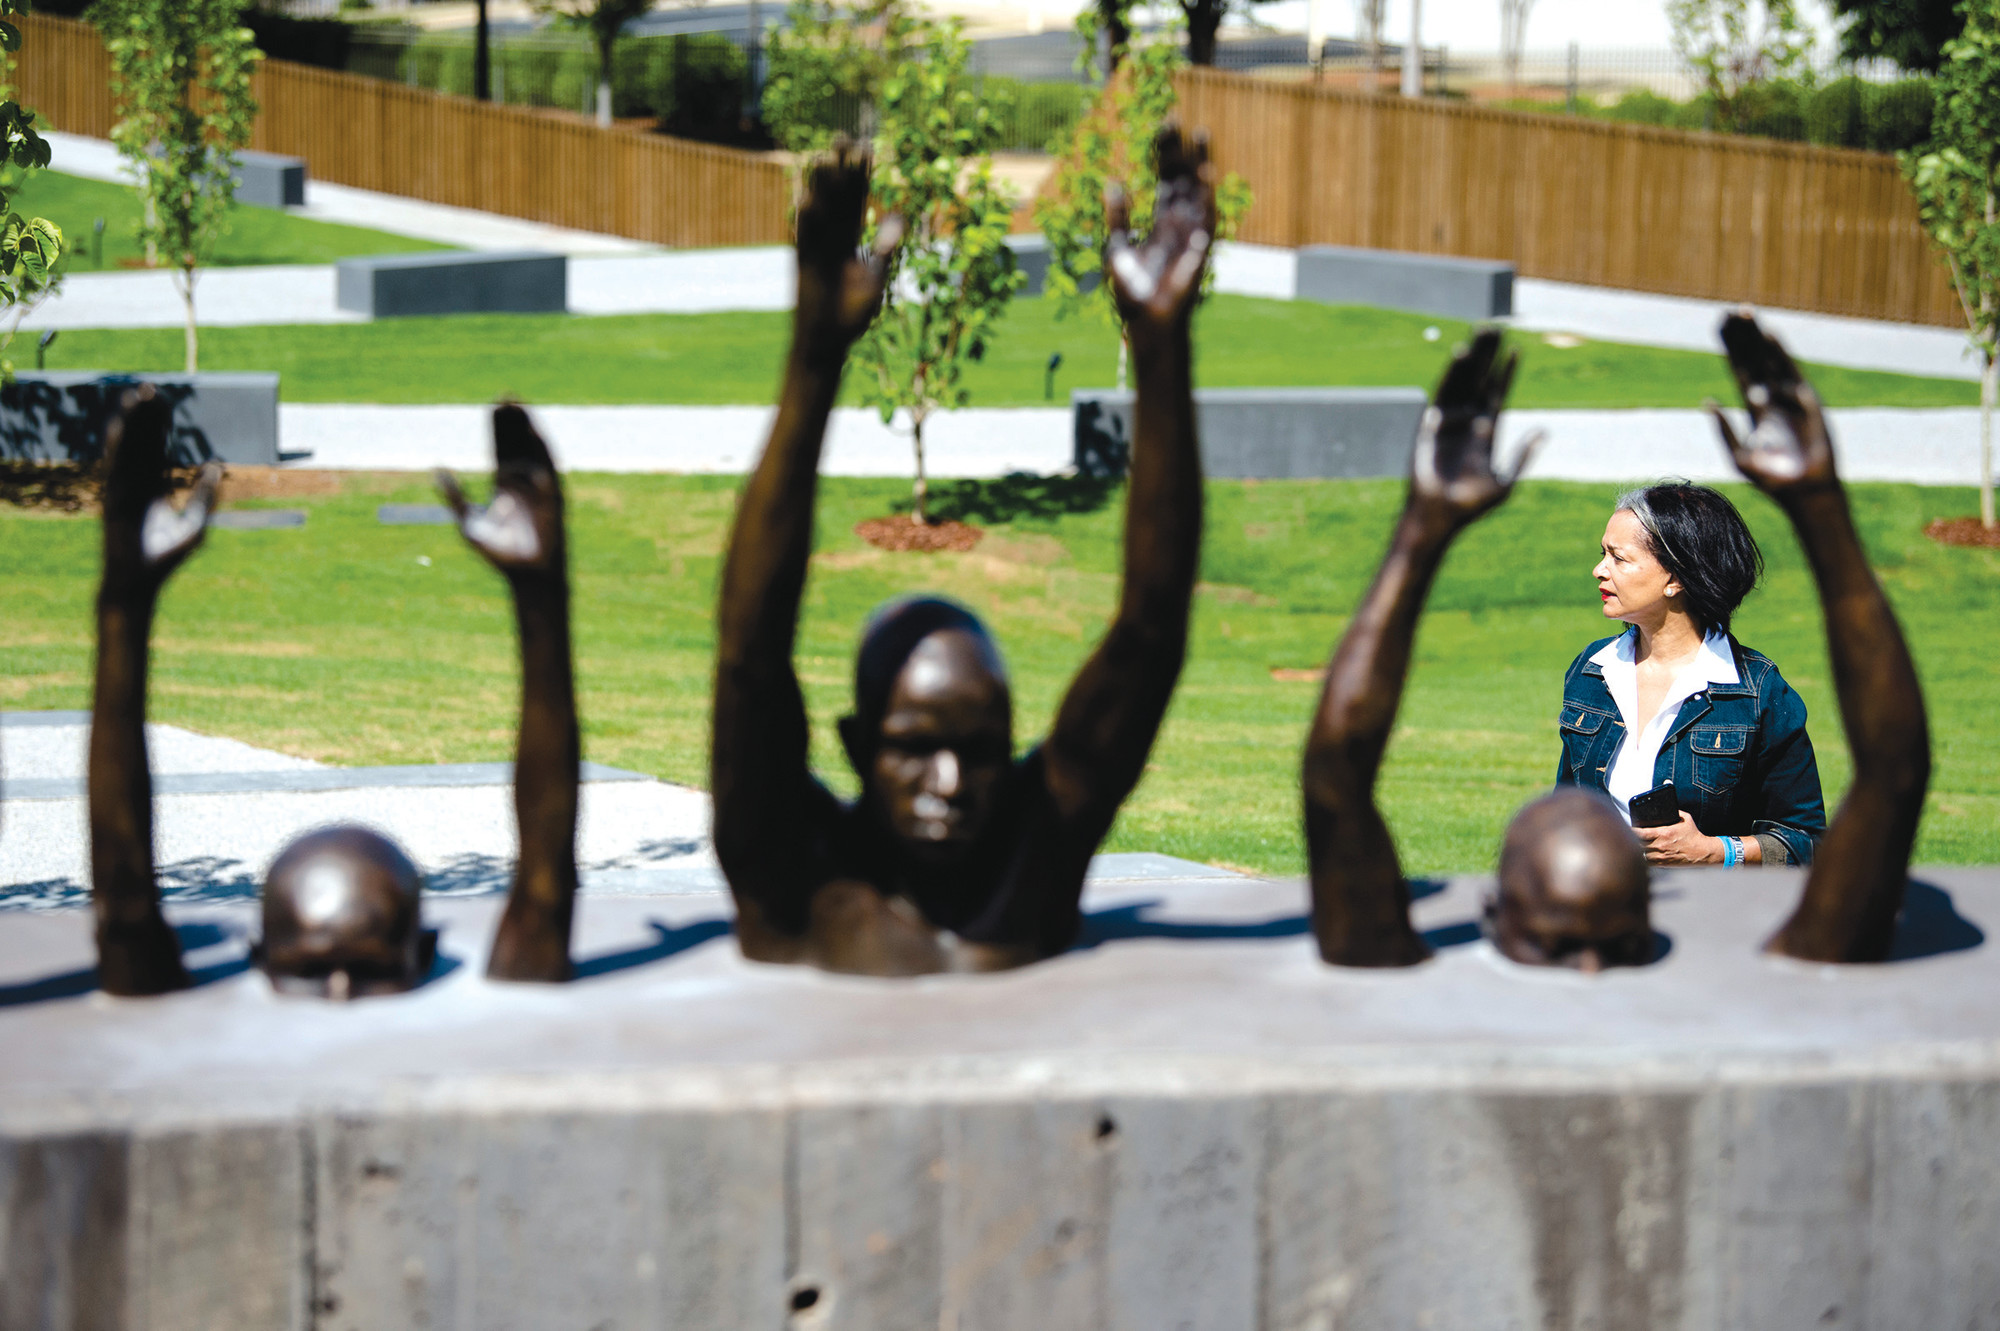 A visitor at EJI's National Memorial for Peace and Justice takes in a sculpture on April 26 in Montgomery. The memorial commemorates 4,400 black people who were slain in lynchings and other racial killings between 1877 and 1950.